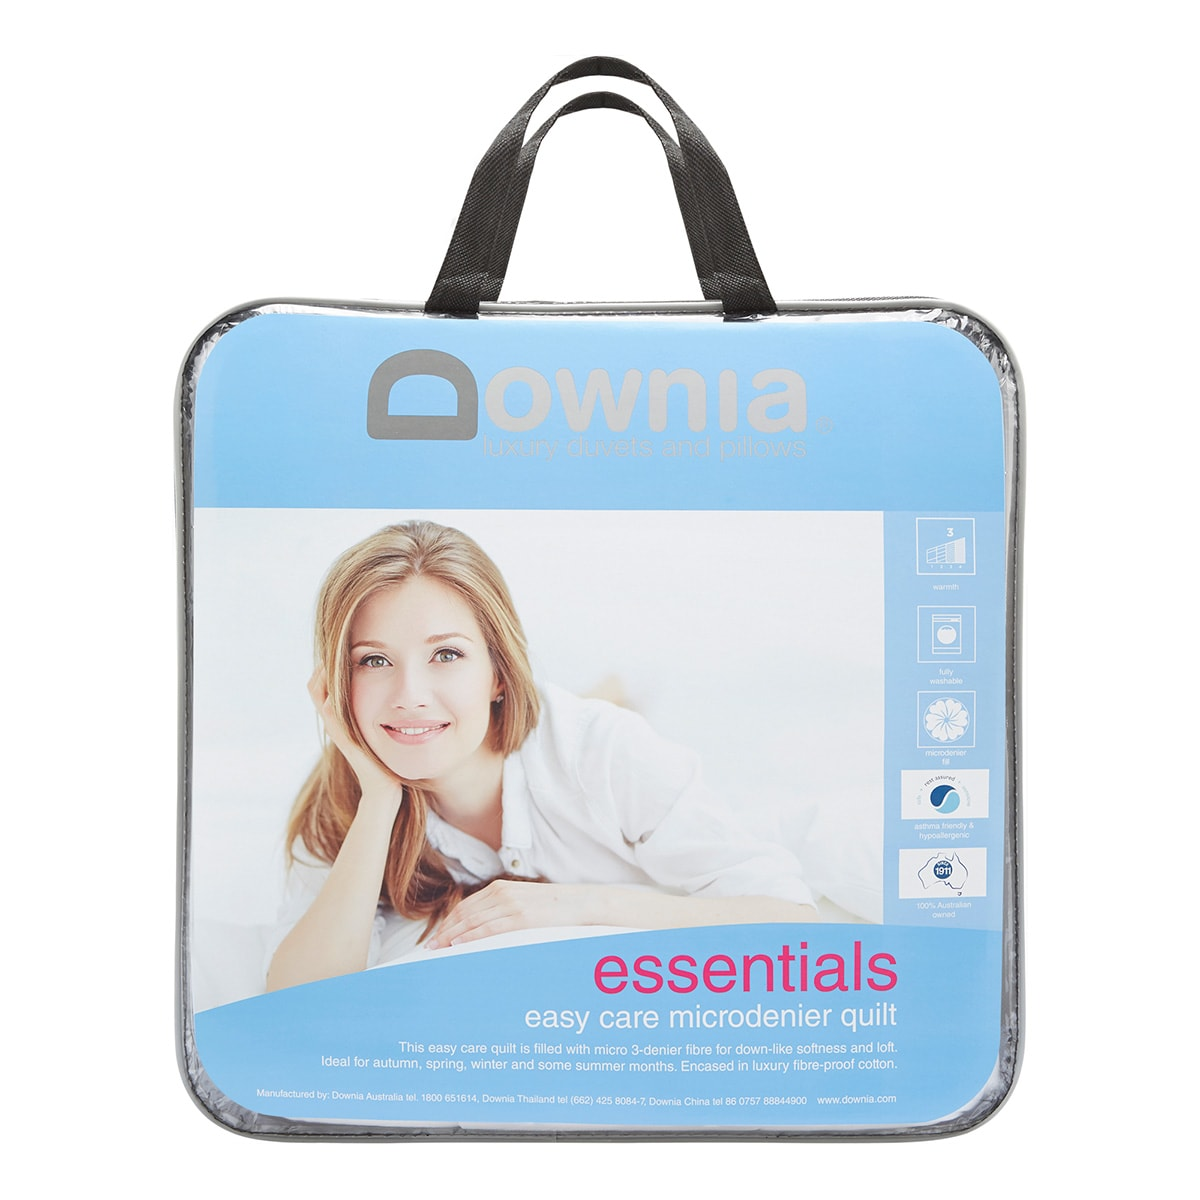 Downia ESSENTIALS COLLECTION 3 denier Duvet|Doona|Quilt KING|QUEEN|DOUBLE|SINGLE